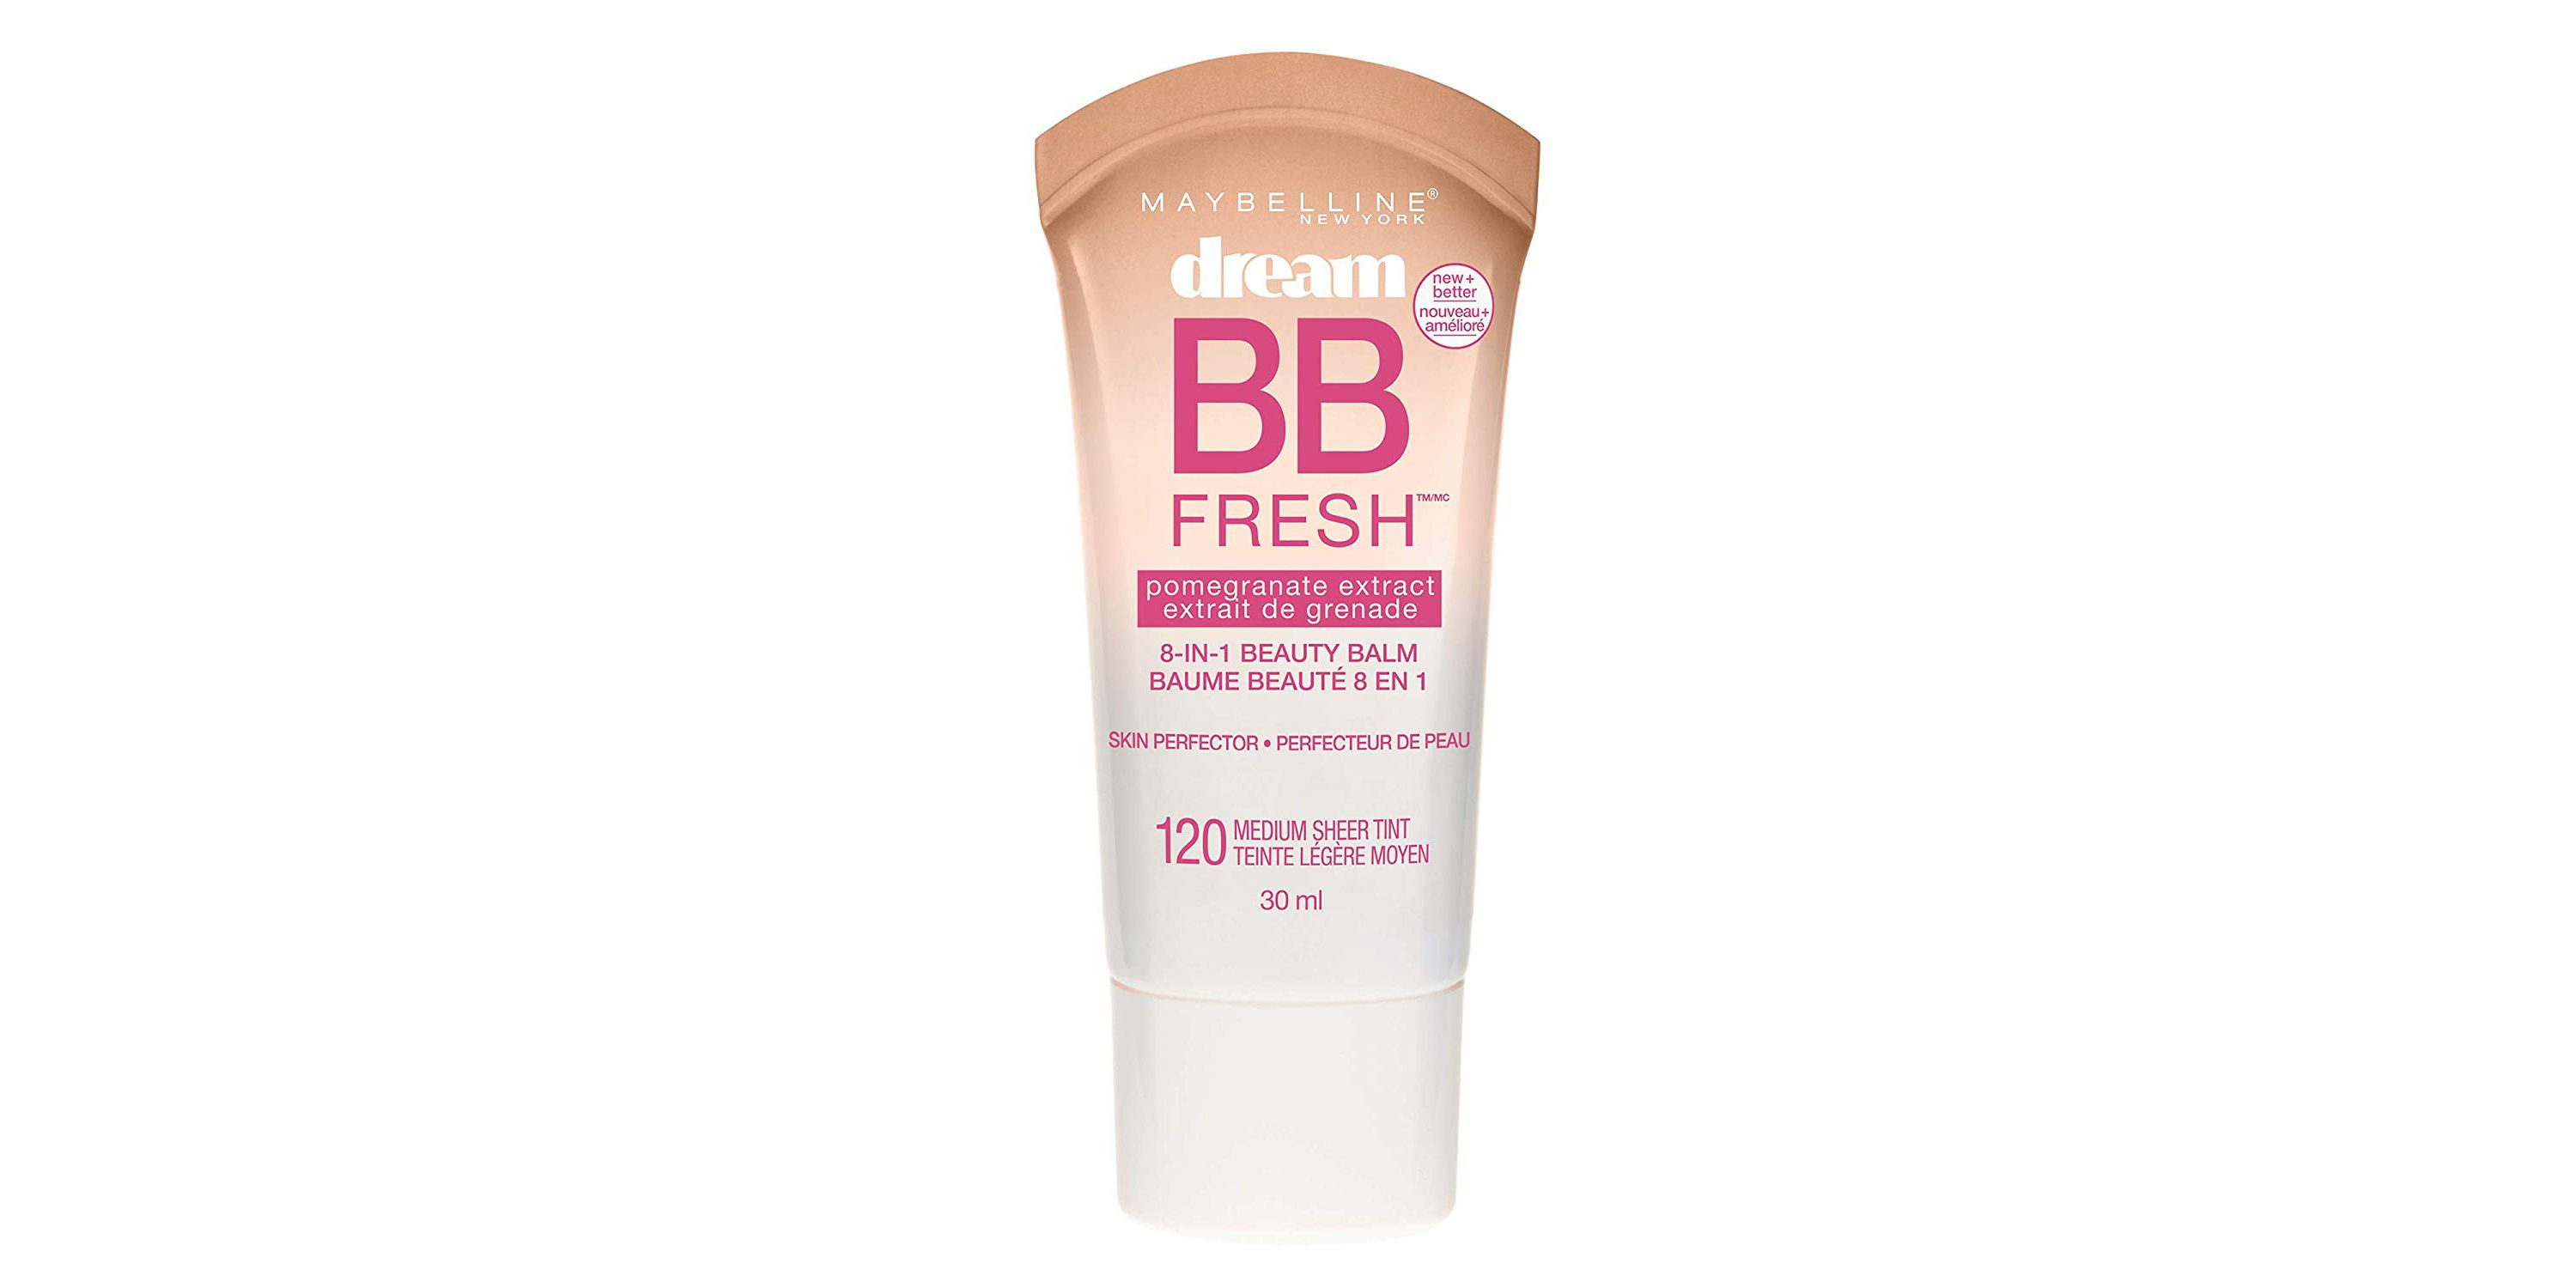 10 Best BB Creams That Are Way Better Than Foundation